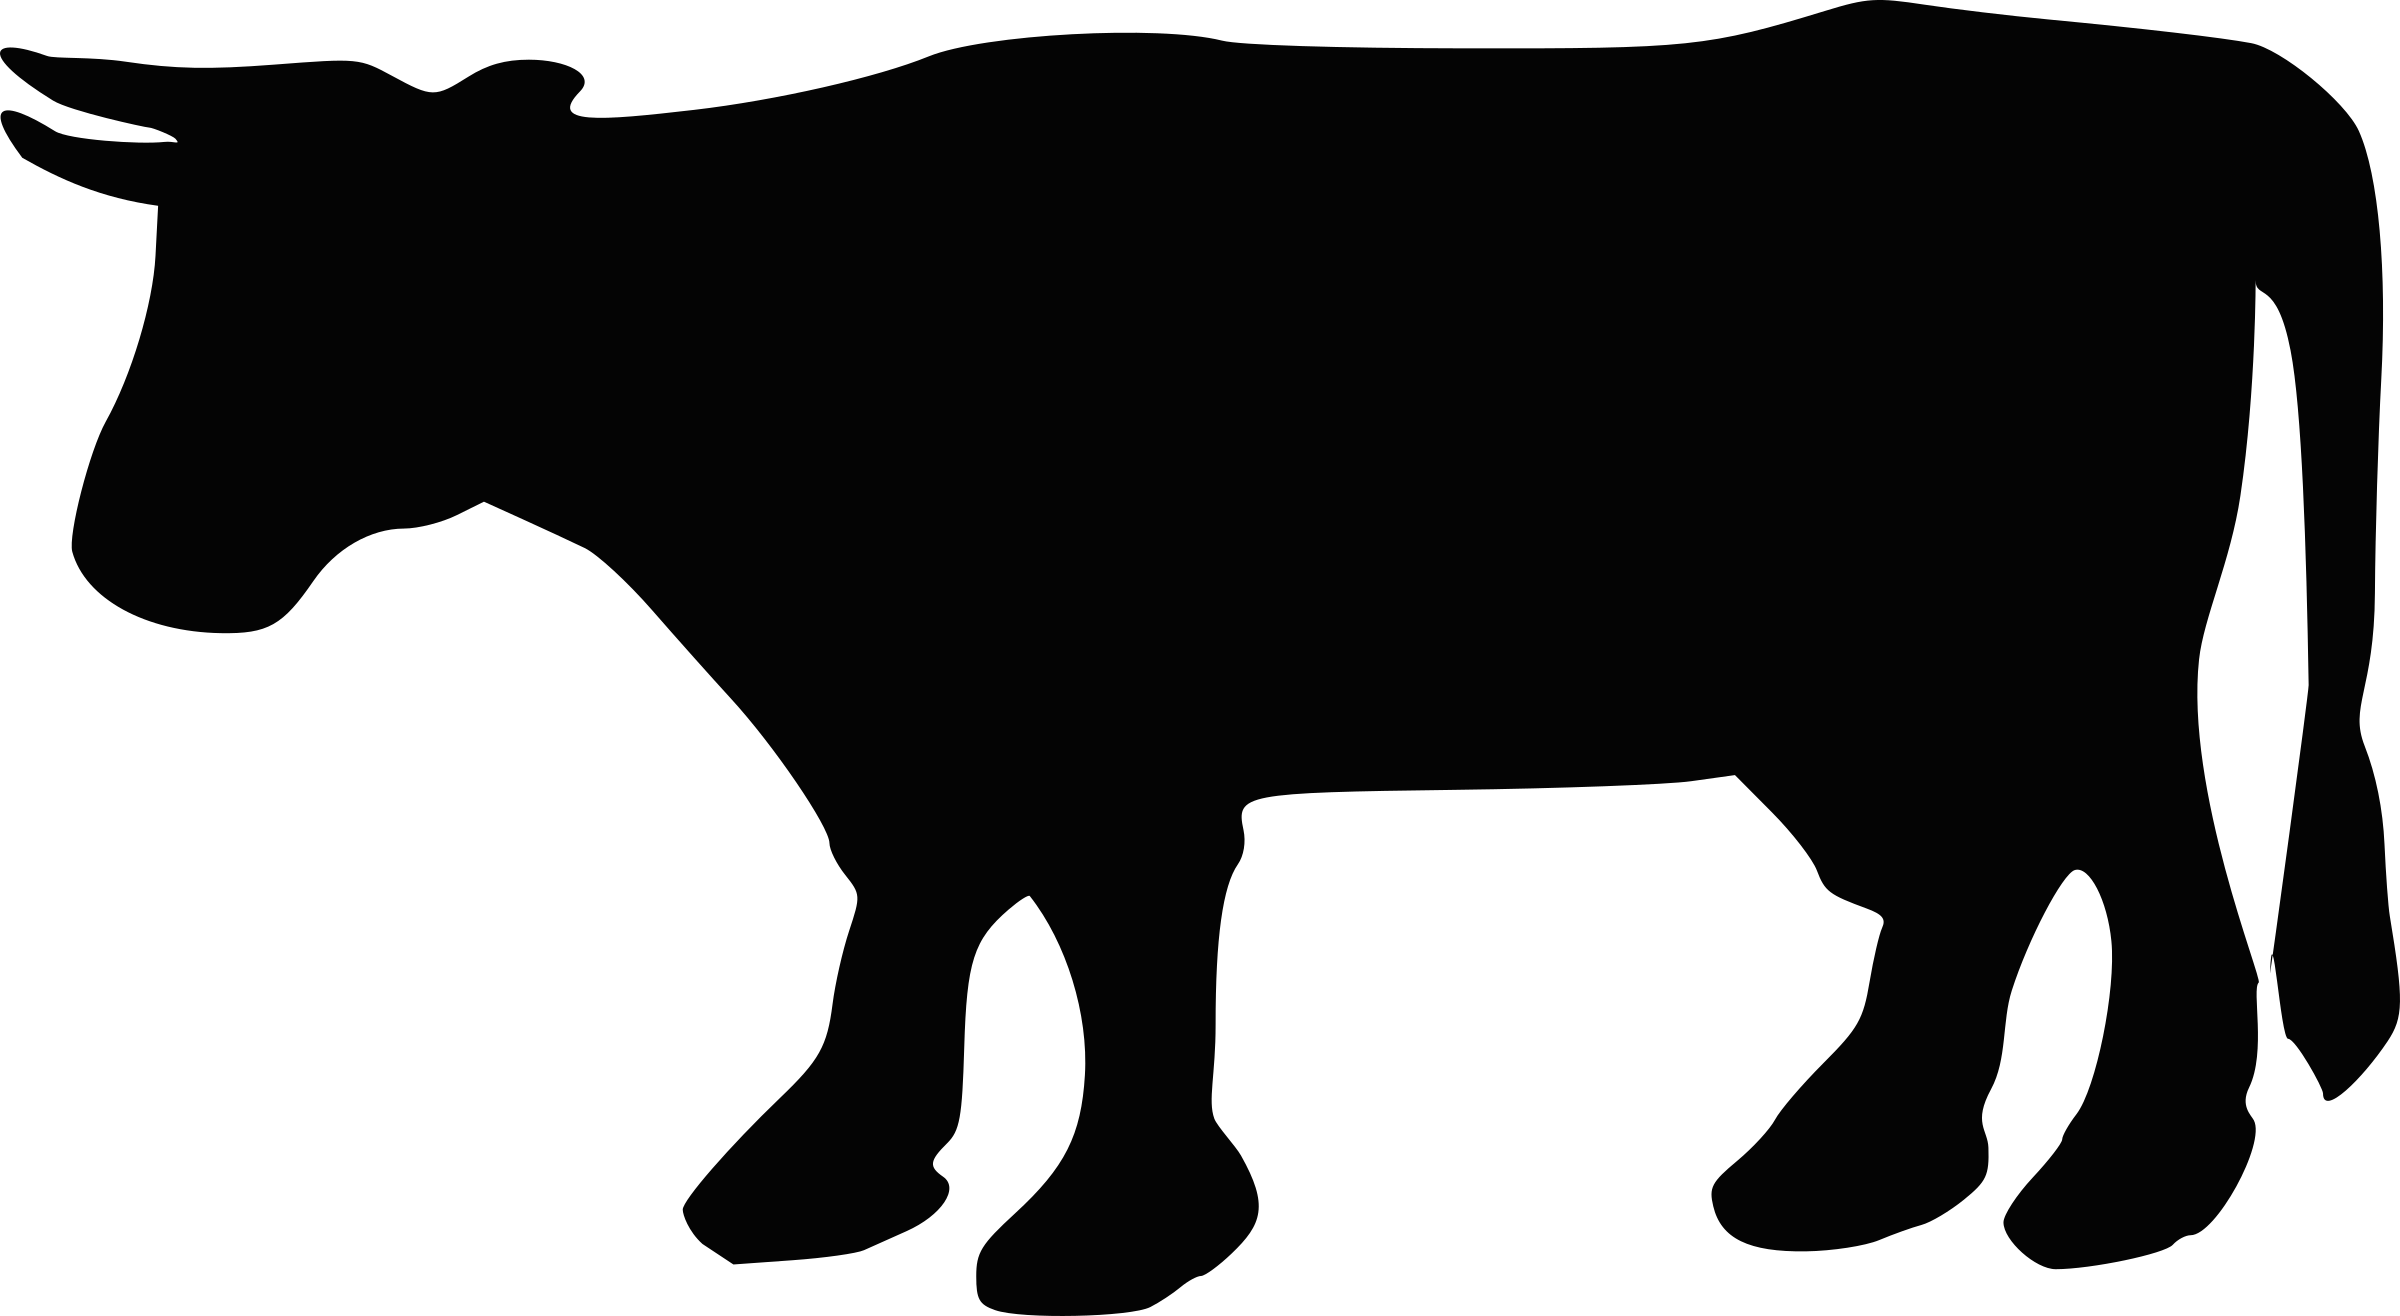 Silhouette png at getdrawings. Clipart rainbow cow